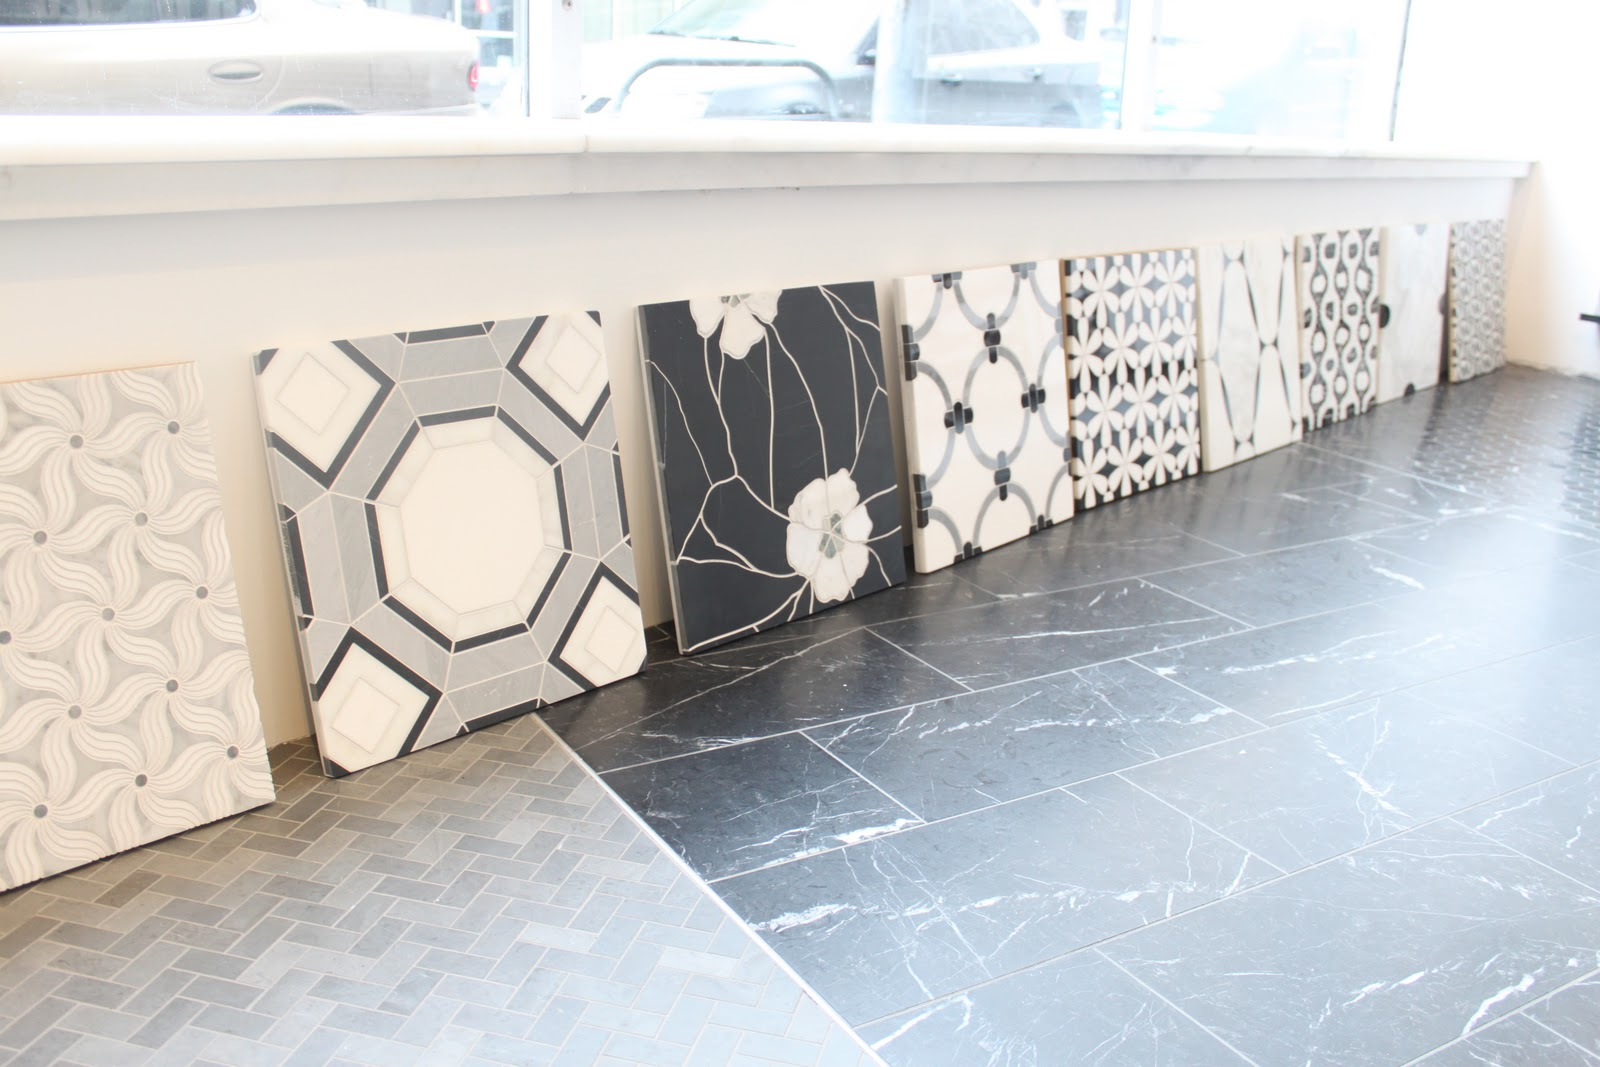 i just adore all these mosaic tiles  i would die to put one of these as a backsplash or a detail behind a cook top range  field trip  ann sacks   michaela noelle designs  rh   michaelanoelledesigns blogspot com